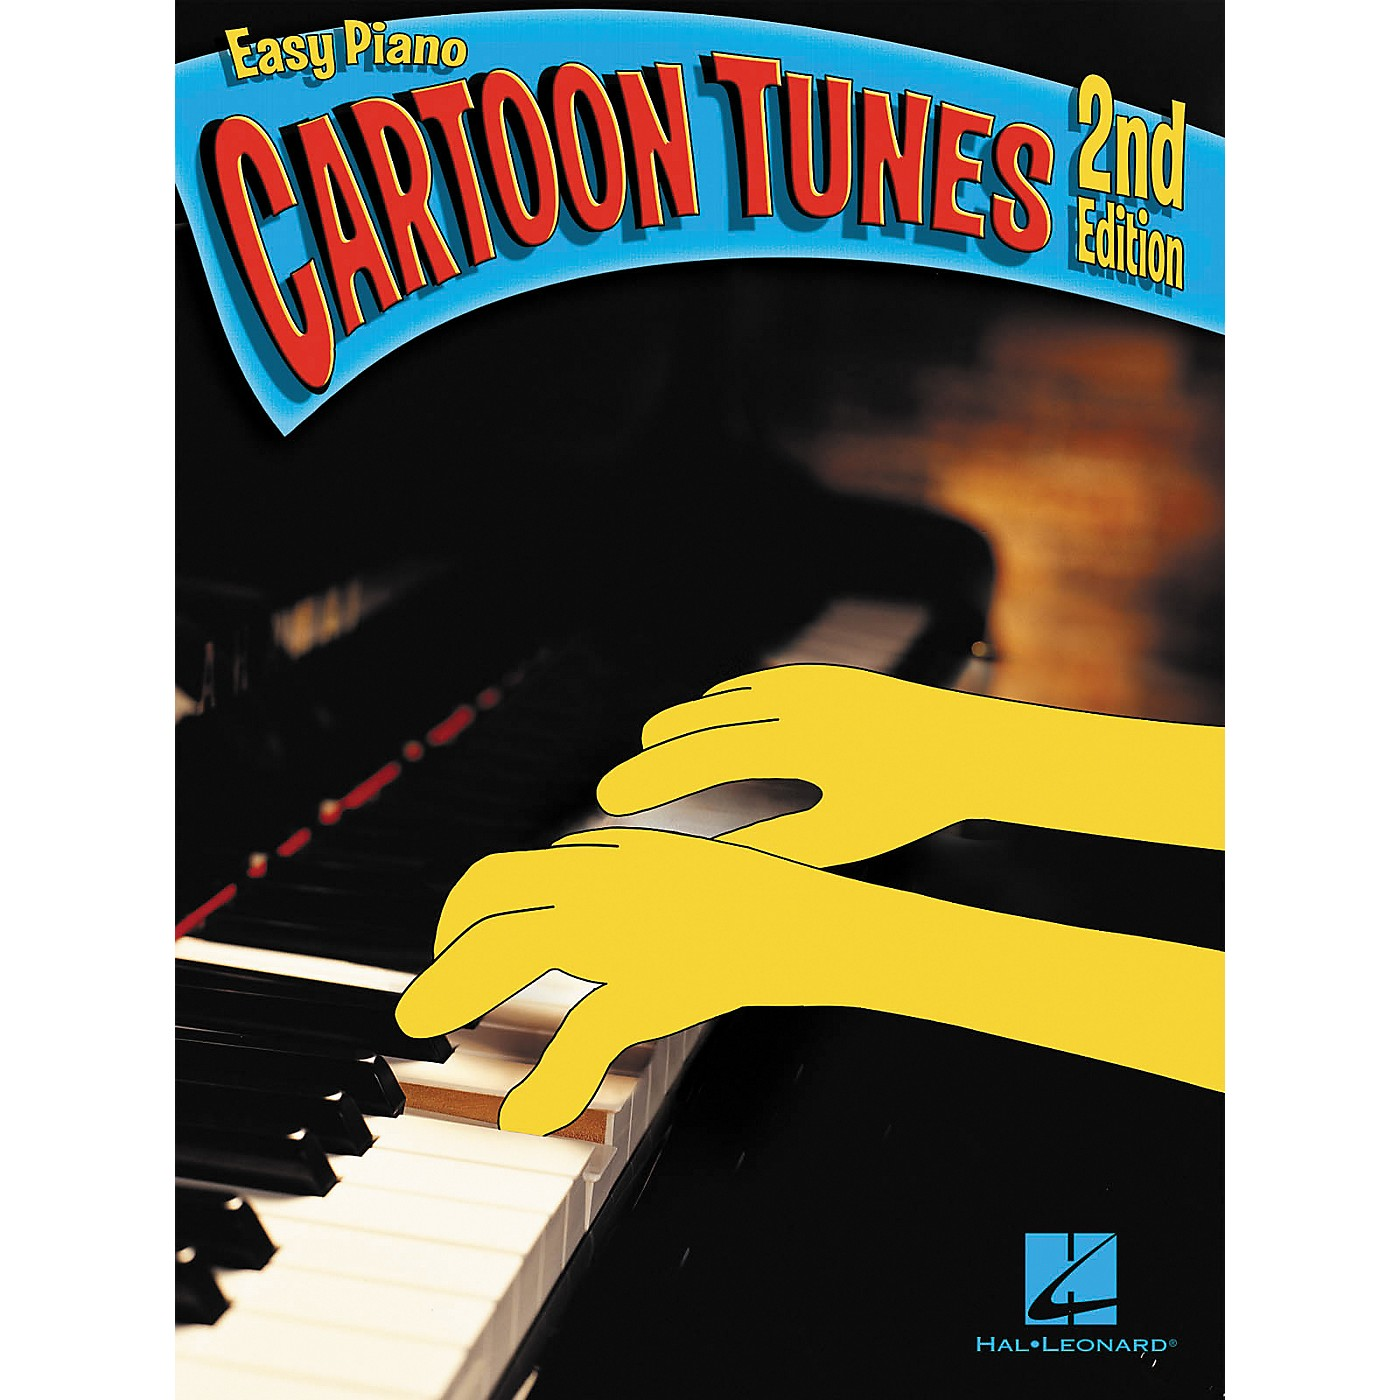 Hal Leonard Cartoon Tunes For Easy Piano 2nd Edition thumbnail